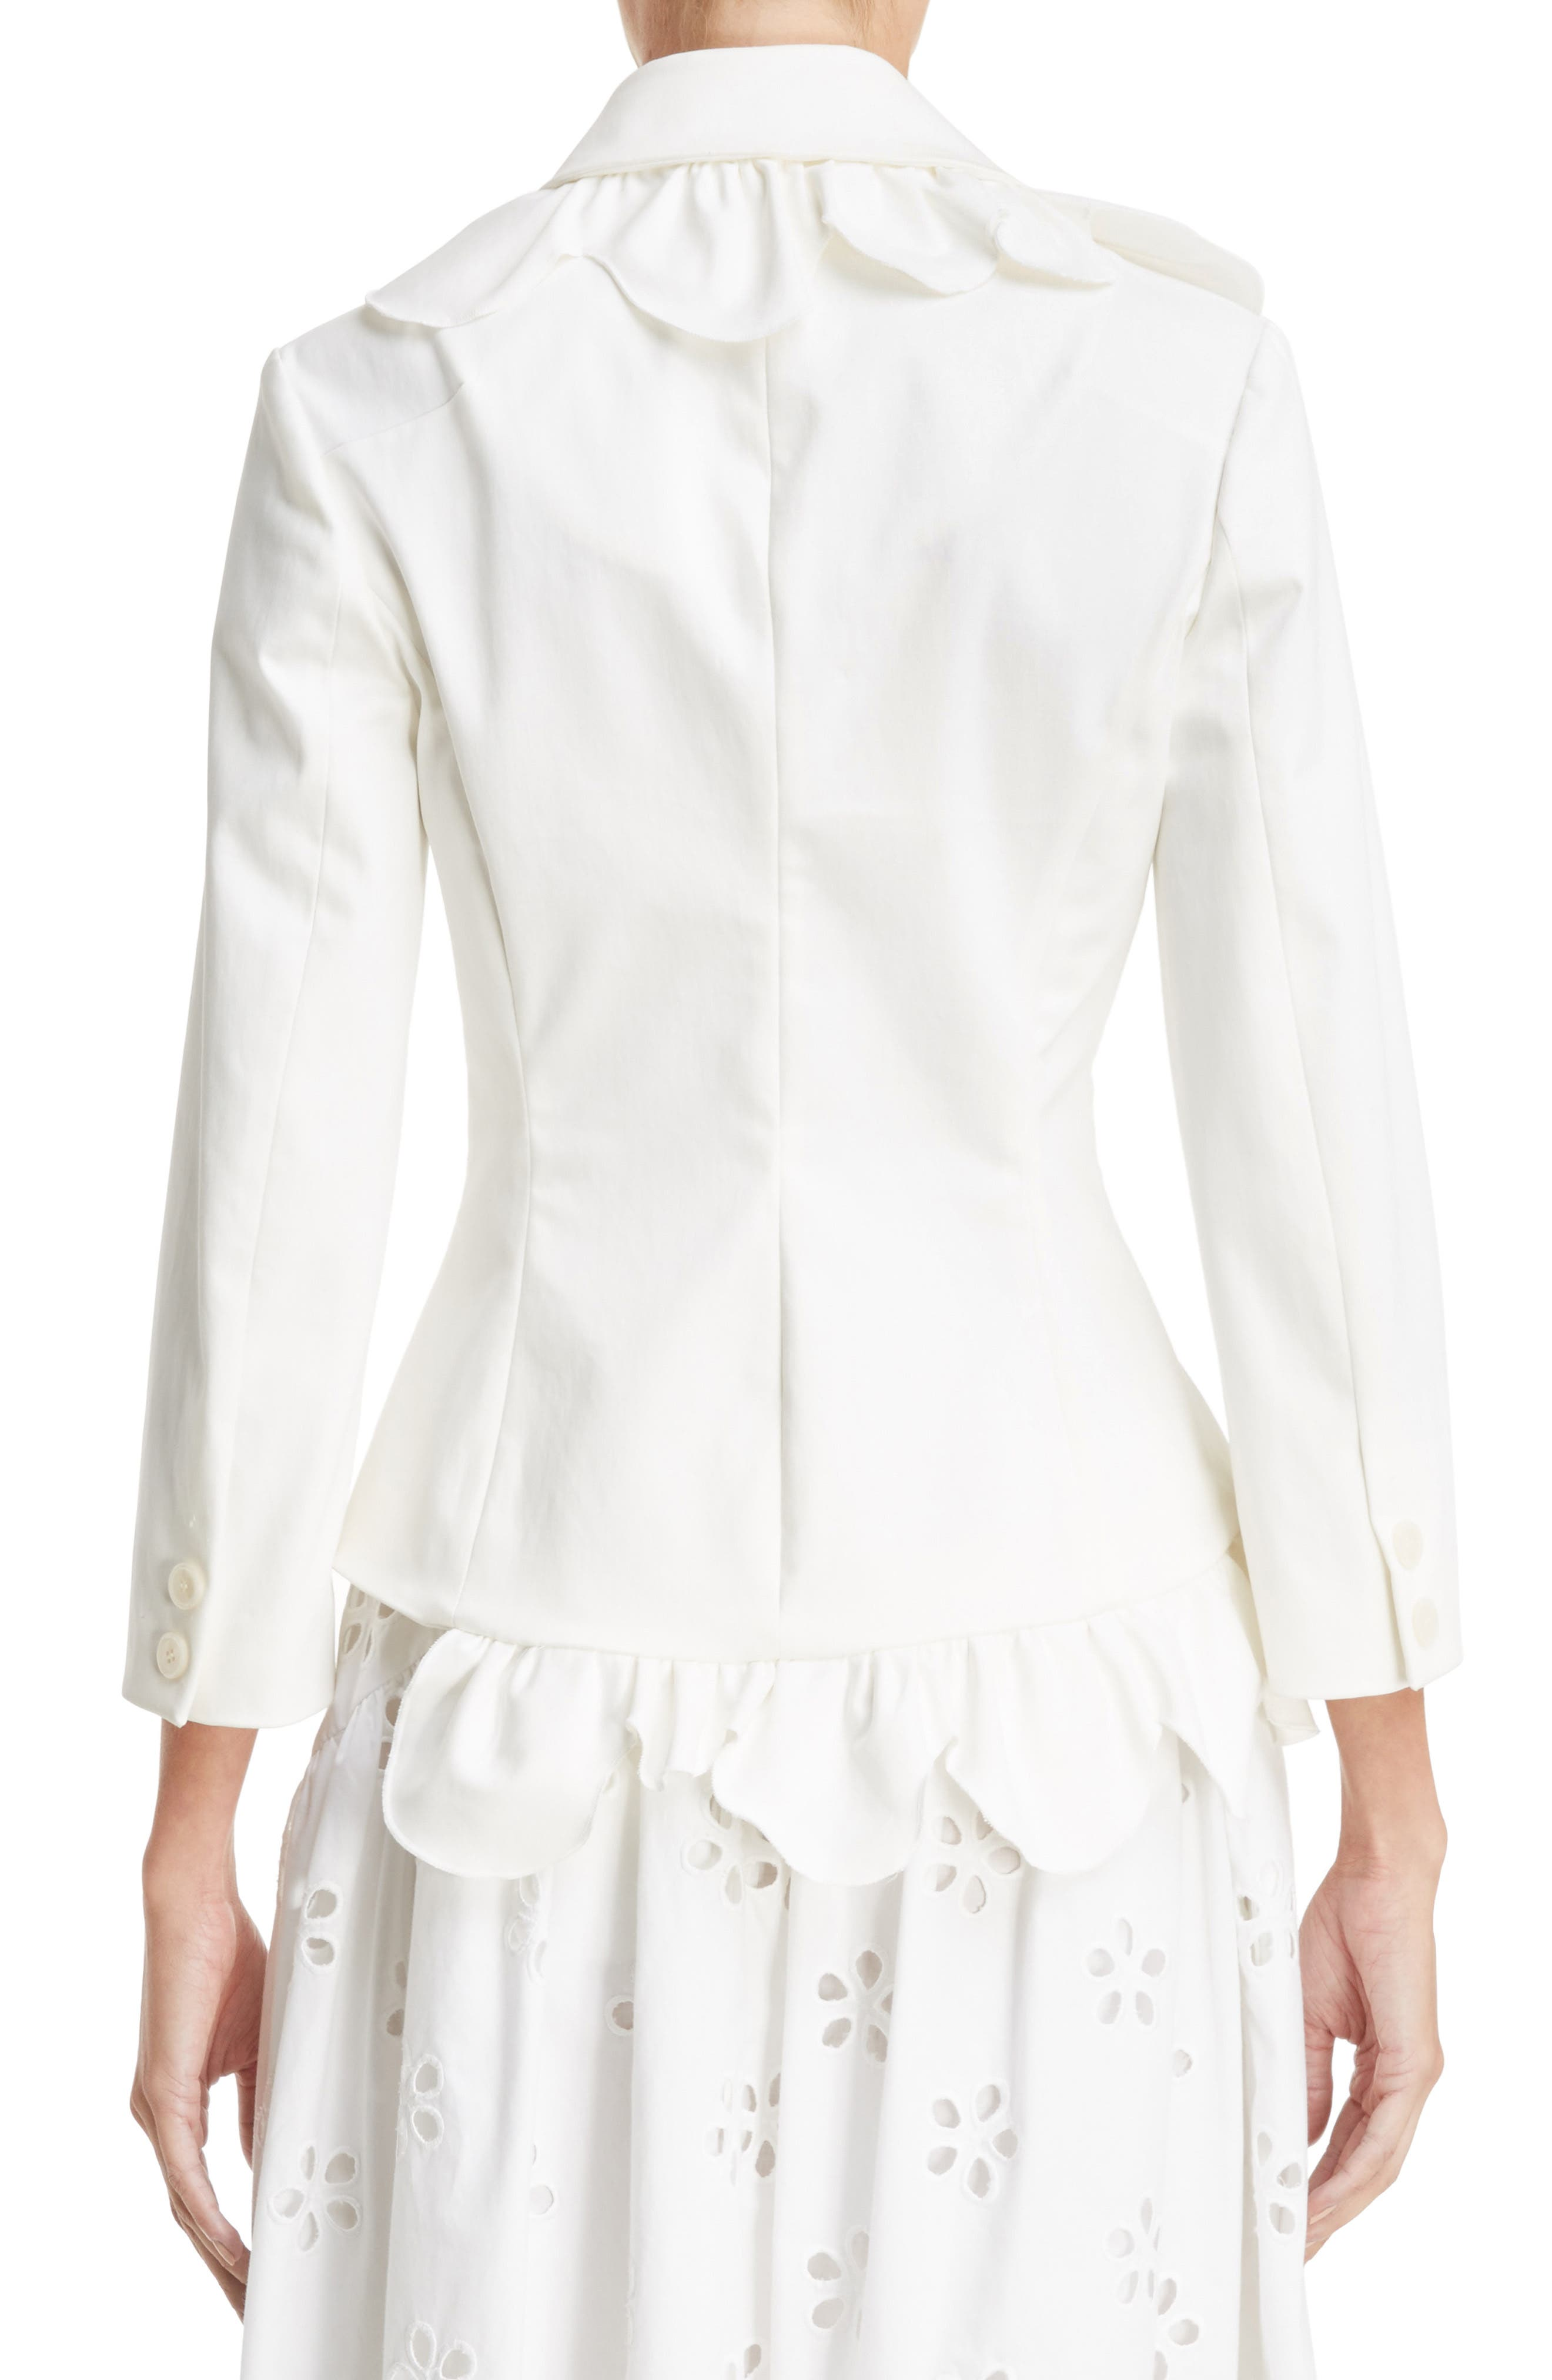 Scallop Frill Fitted Jacket,                             Alternate thumbnail 2, color,                             Ivory